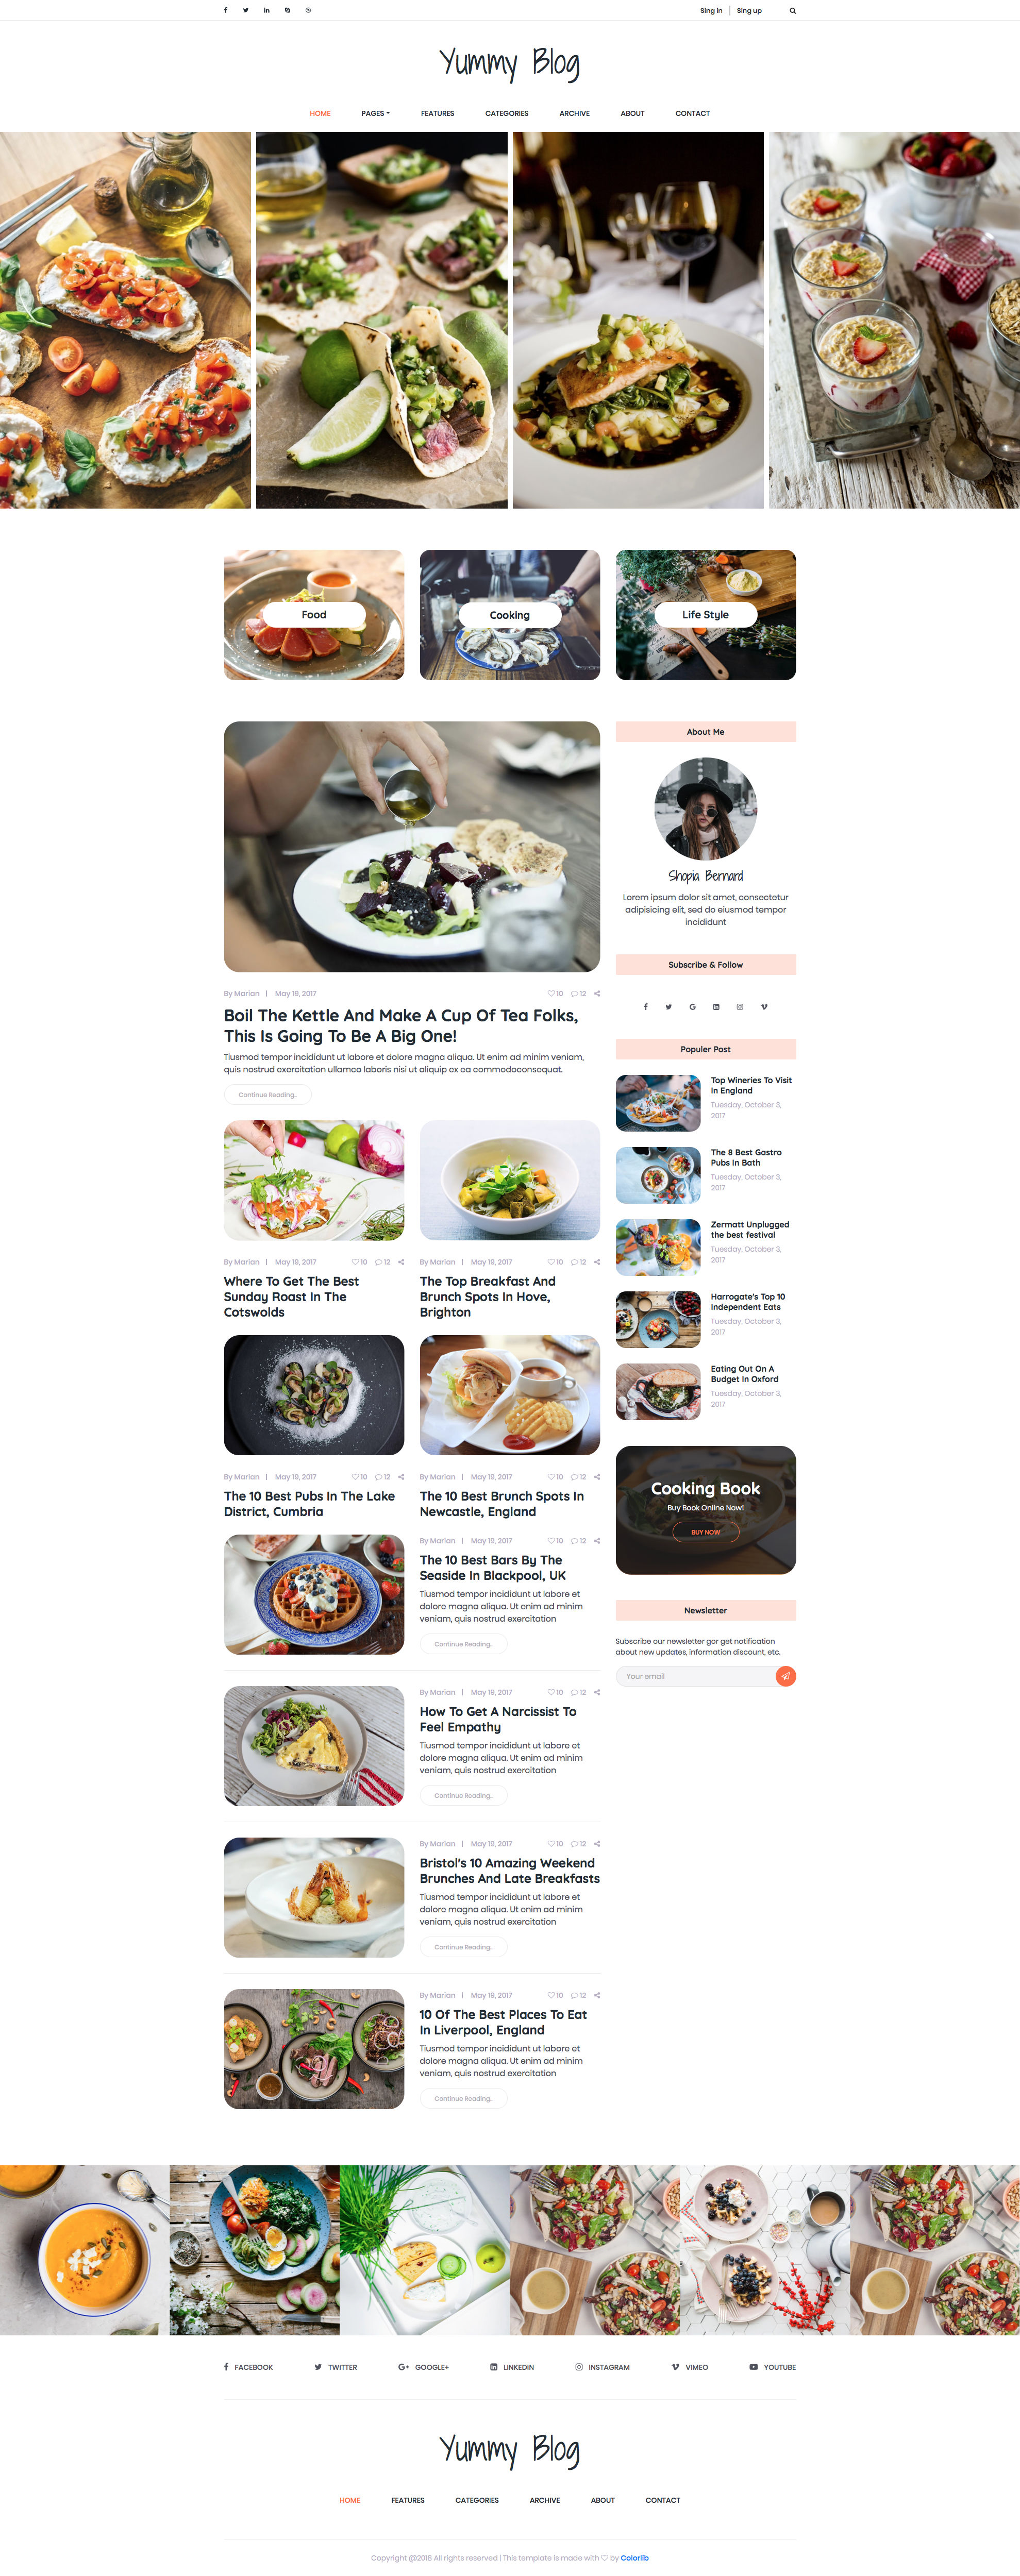 Yummy HTML template is a well design HTML5 Bootstrap Food Blog website template the best choice for food bloggers. This Blog template looks beautiful and appears smoothly on any device. It comes with 5 different pages and the best choice for food bloggers. Yummy HTML Food Blog template is retina ready and comes with the popular Bootstrap CSS Grid System.